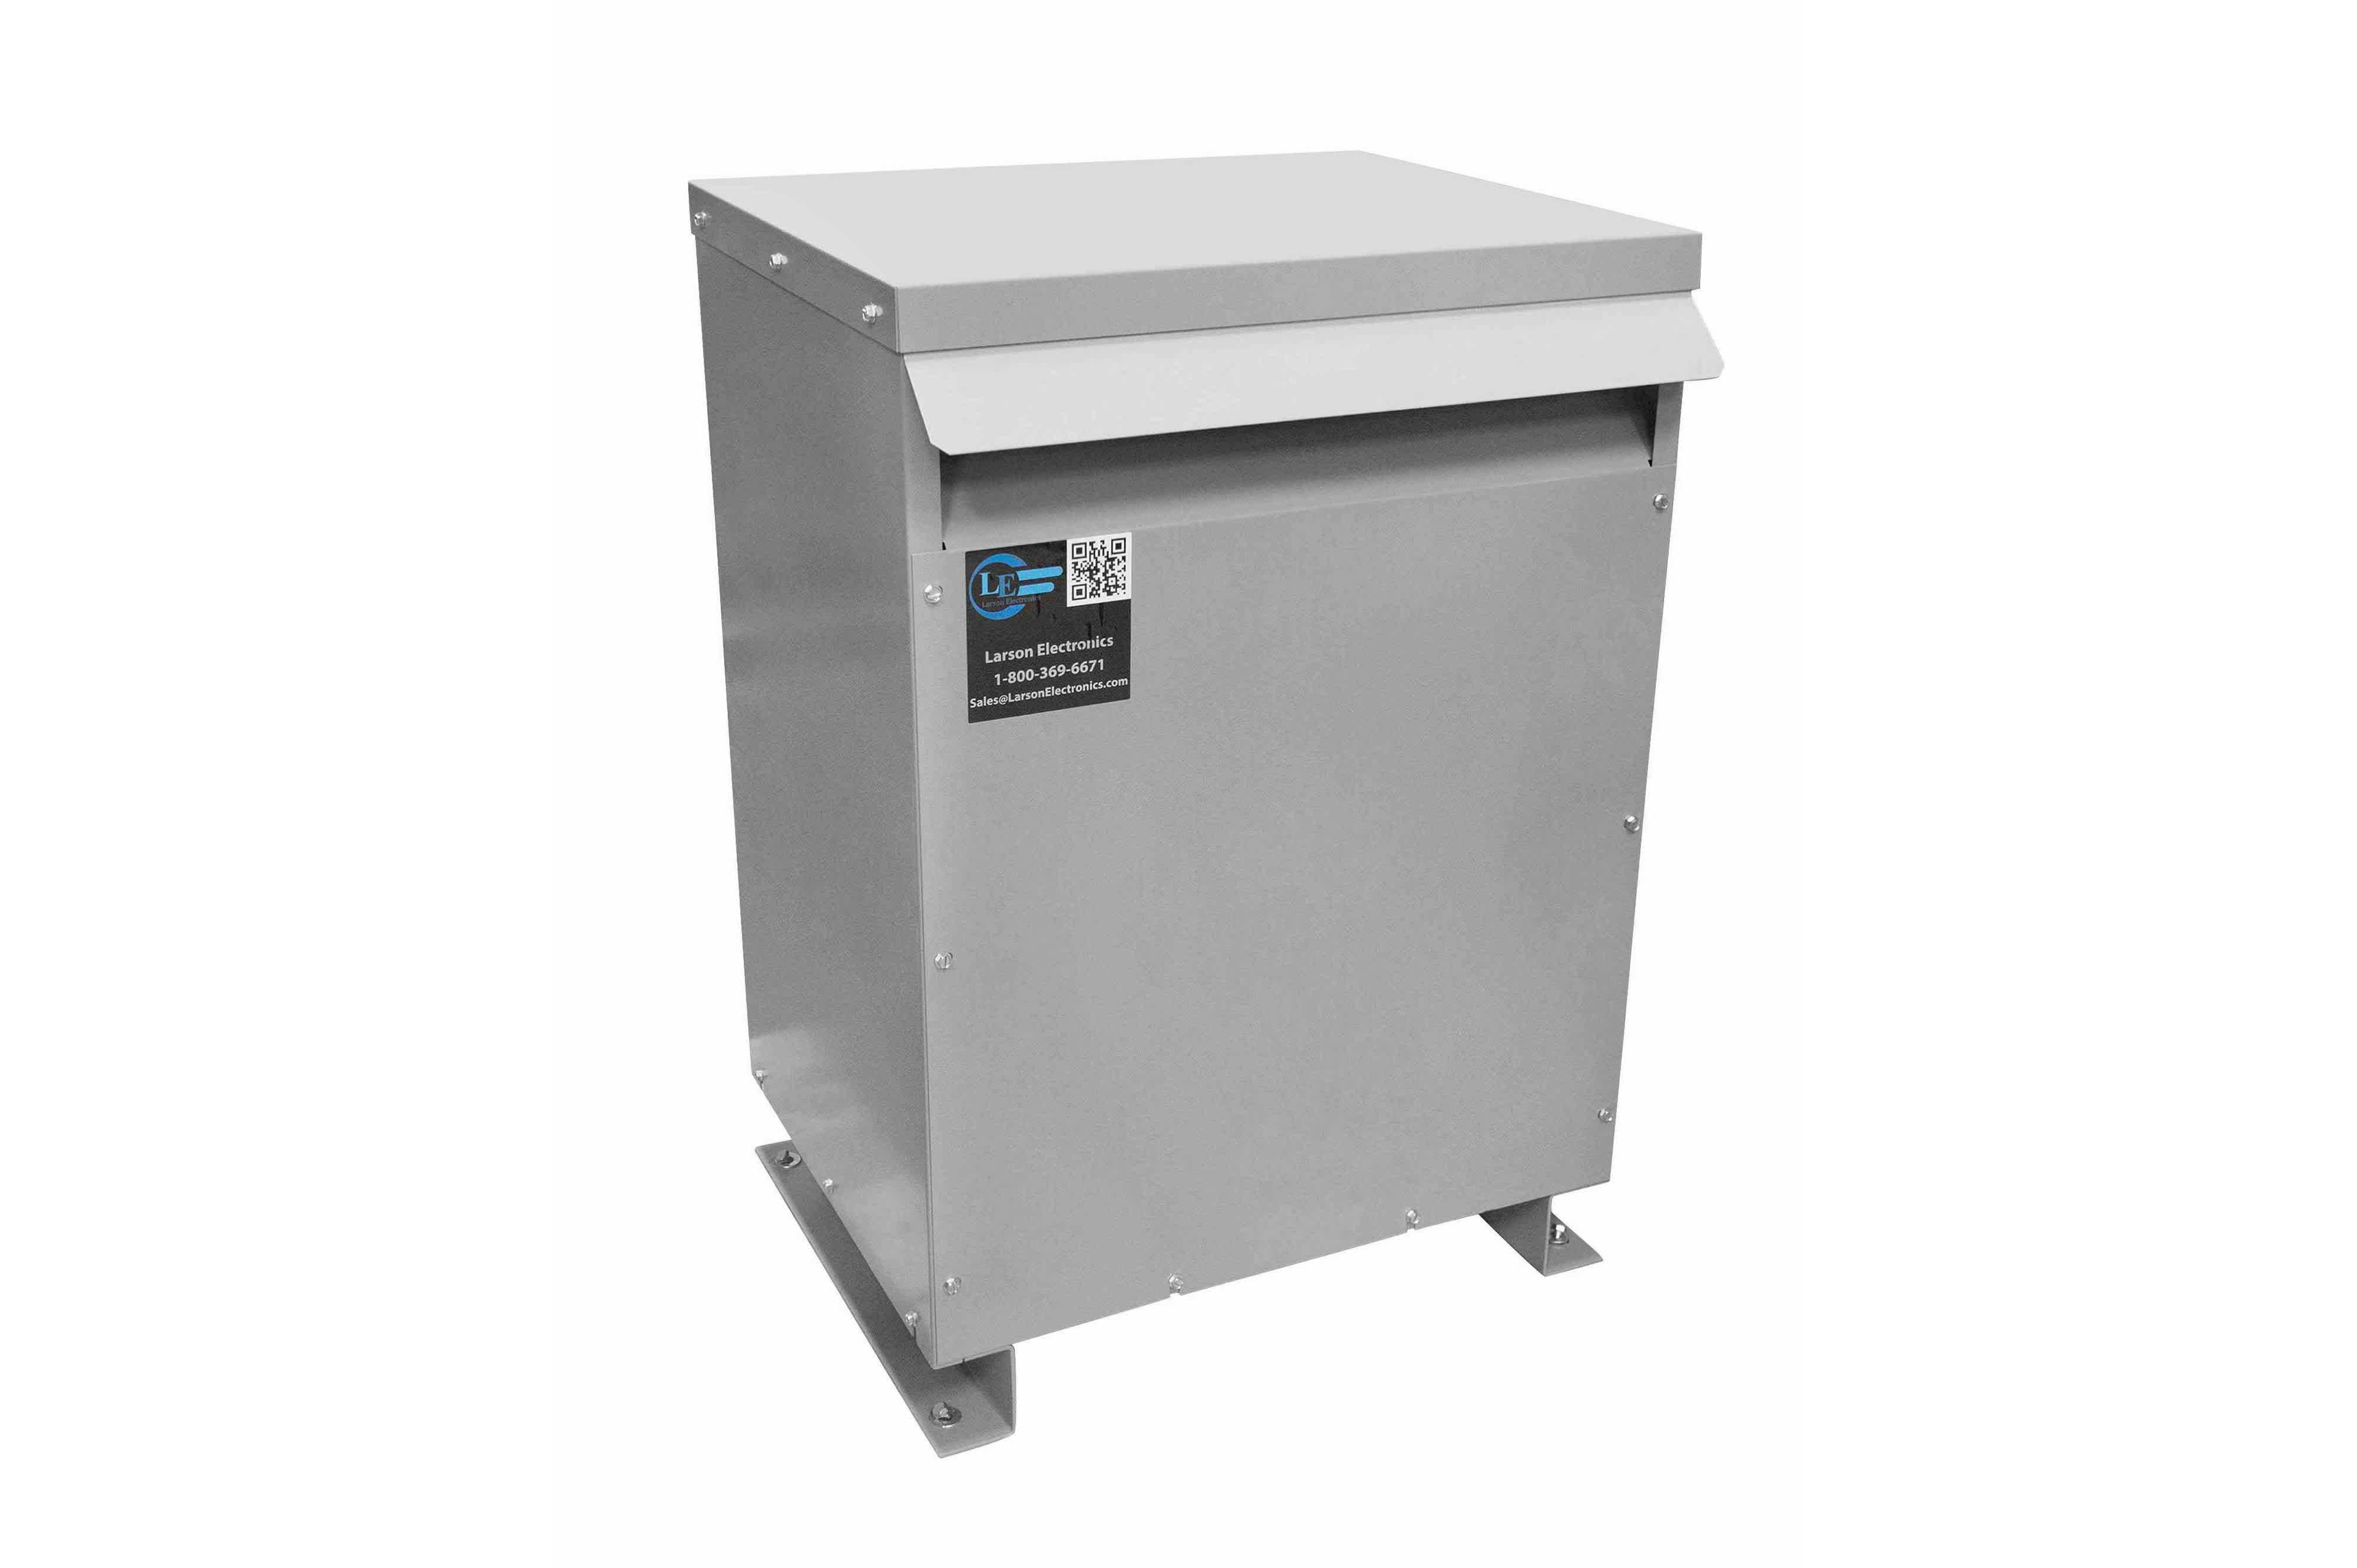 600 kVA 3PH Isolation Transformer, 480V Wye Primary, 400V Delta Secondary, N3R, Ventilated, 60 Hz